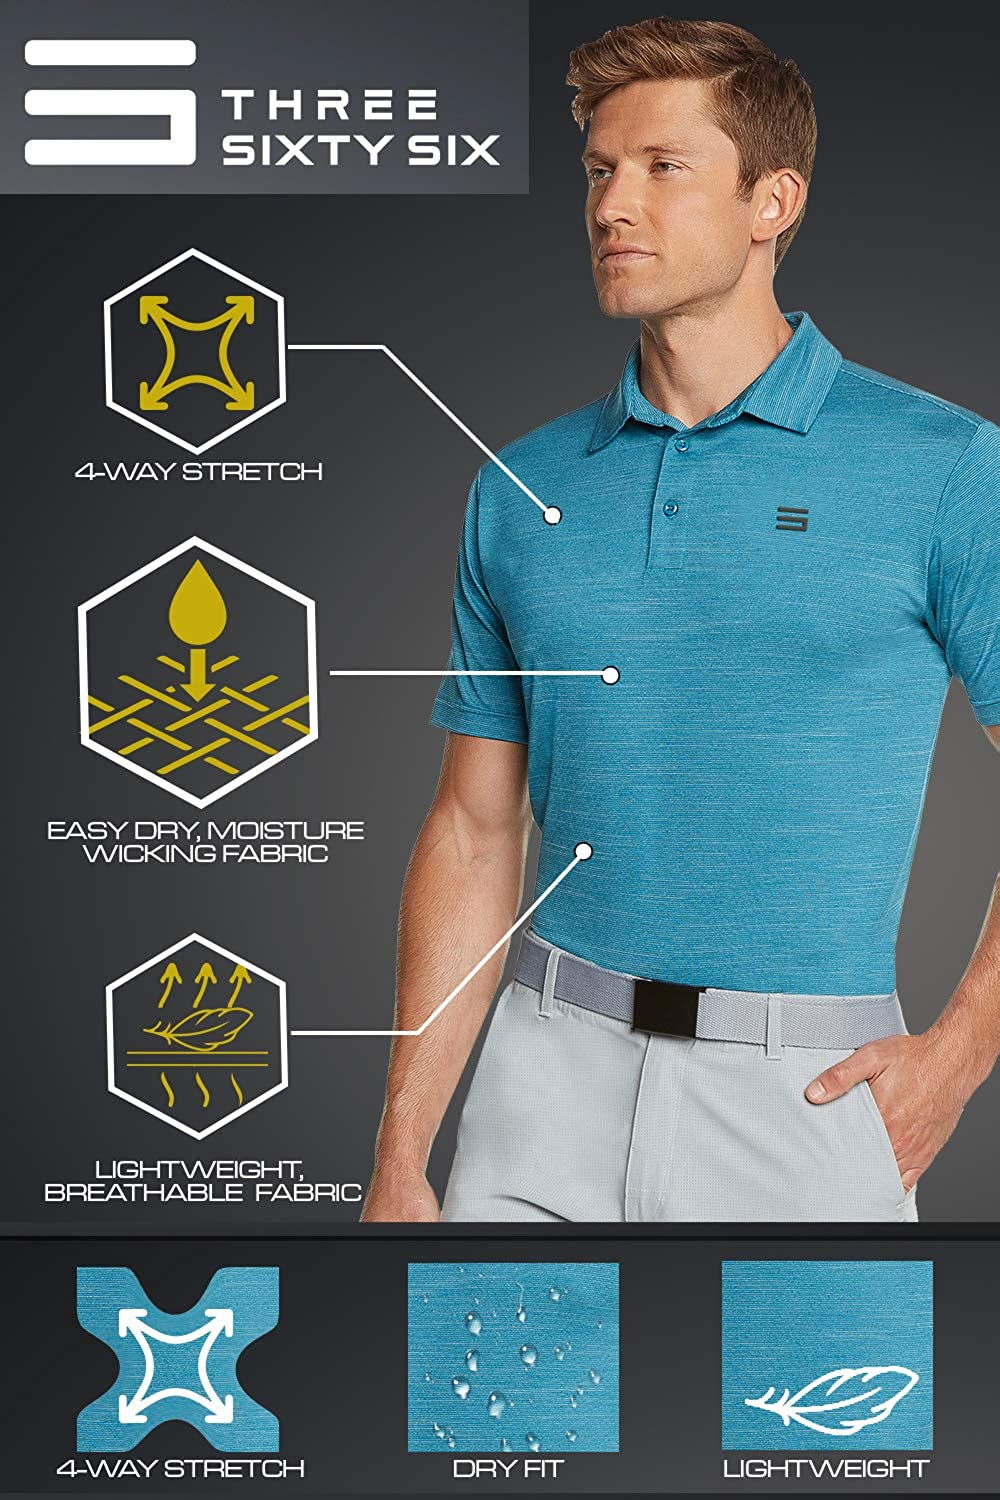 Three Sixty Six Golf Shirts for Men - Dry Fit Short-Sleeve Polo, Athletic Casual Collared T-Shirt : Clothing